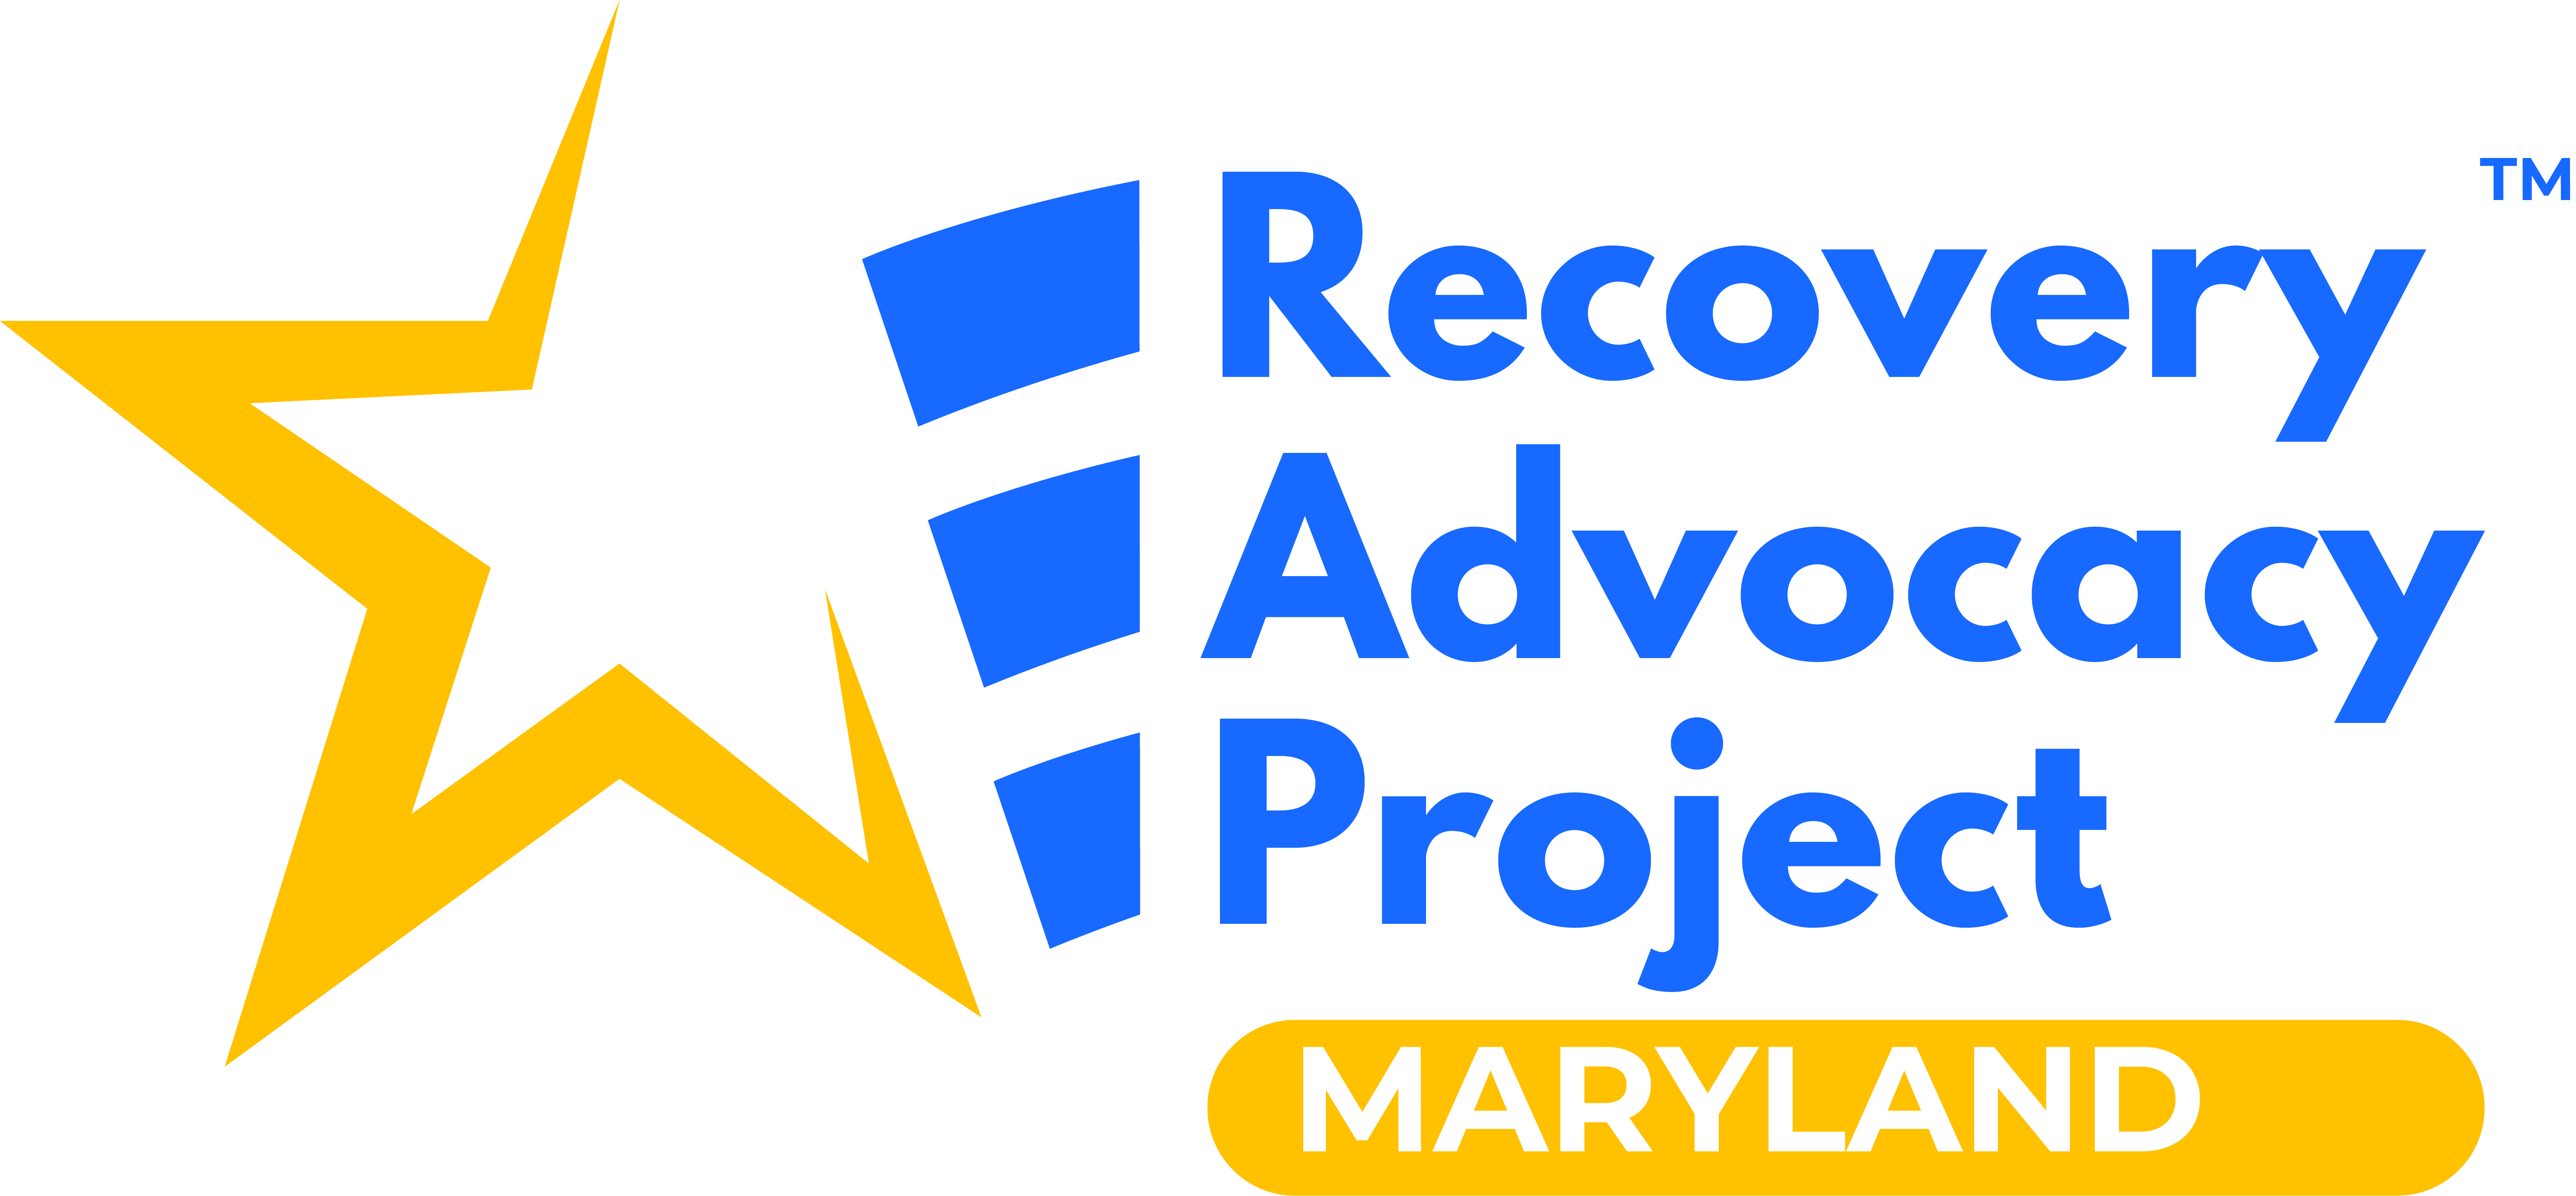 Recovery Advocacy Project Logo for Maryland